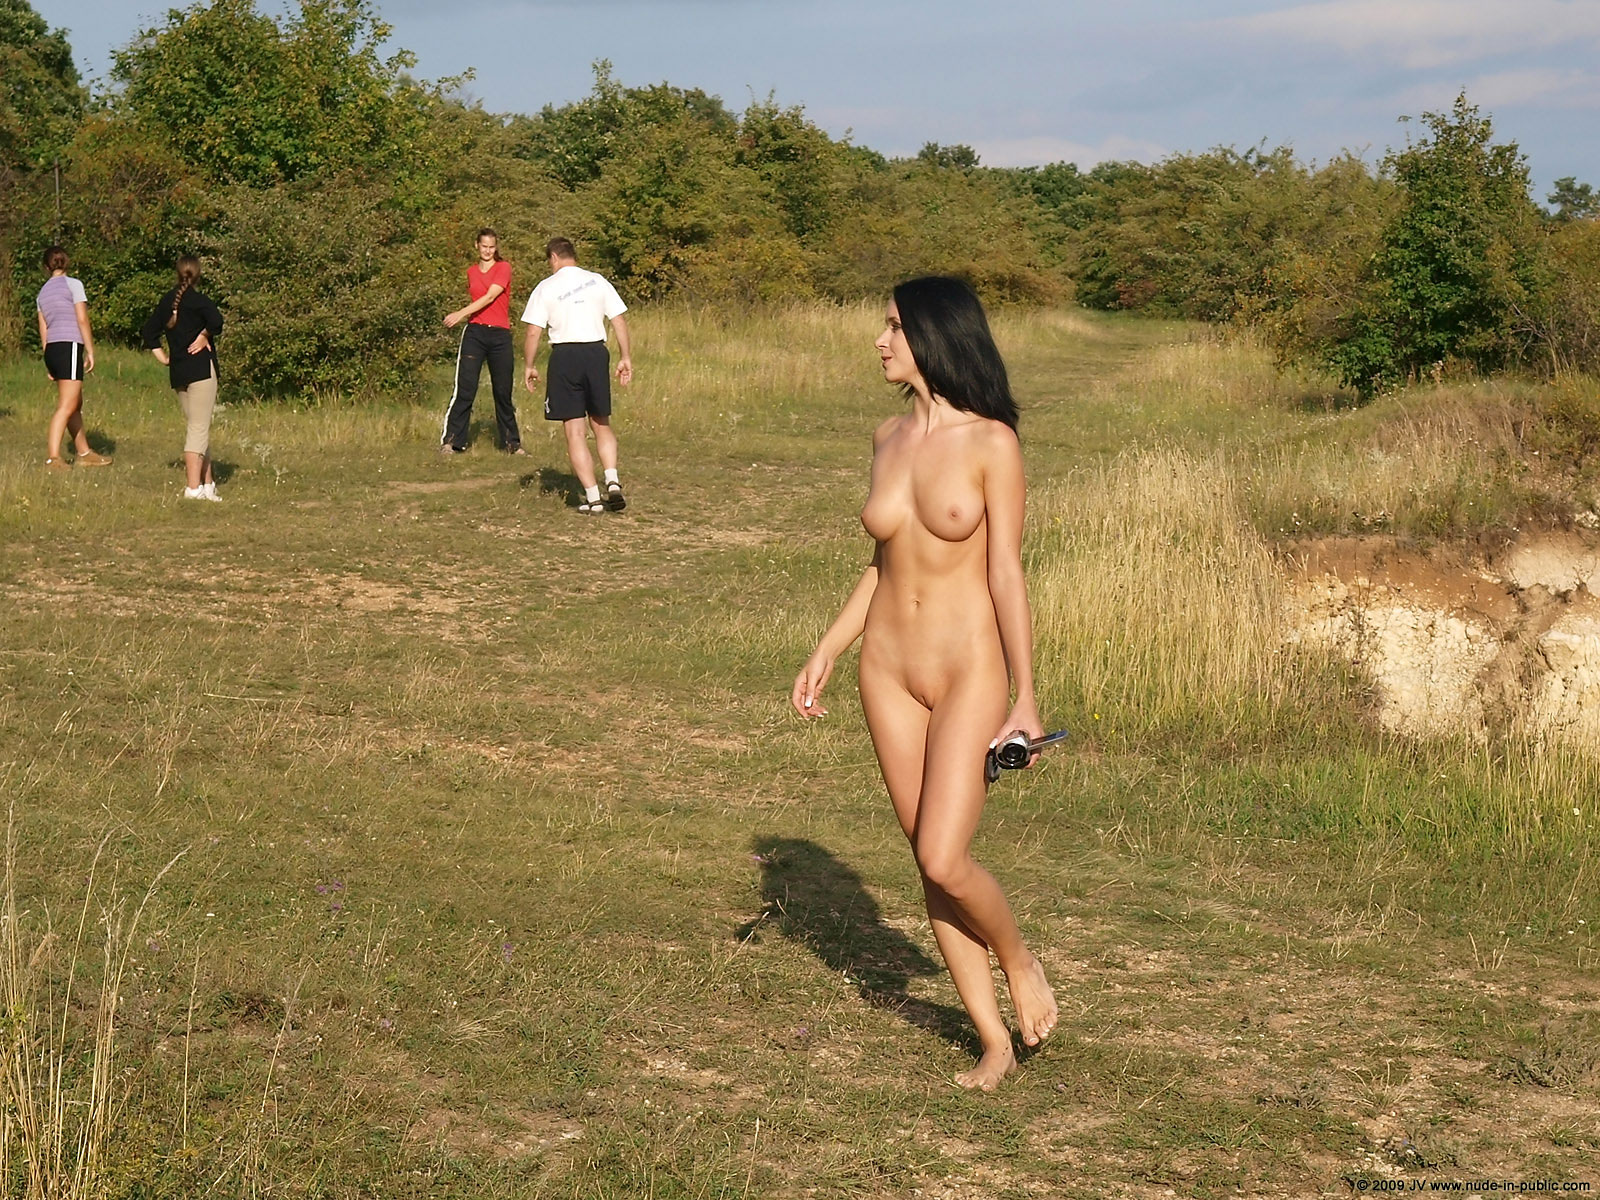 nude-in-public-vol4-77